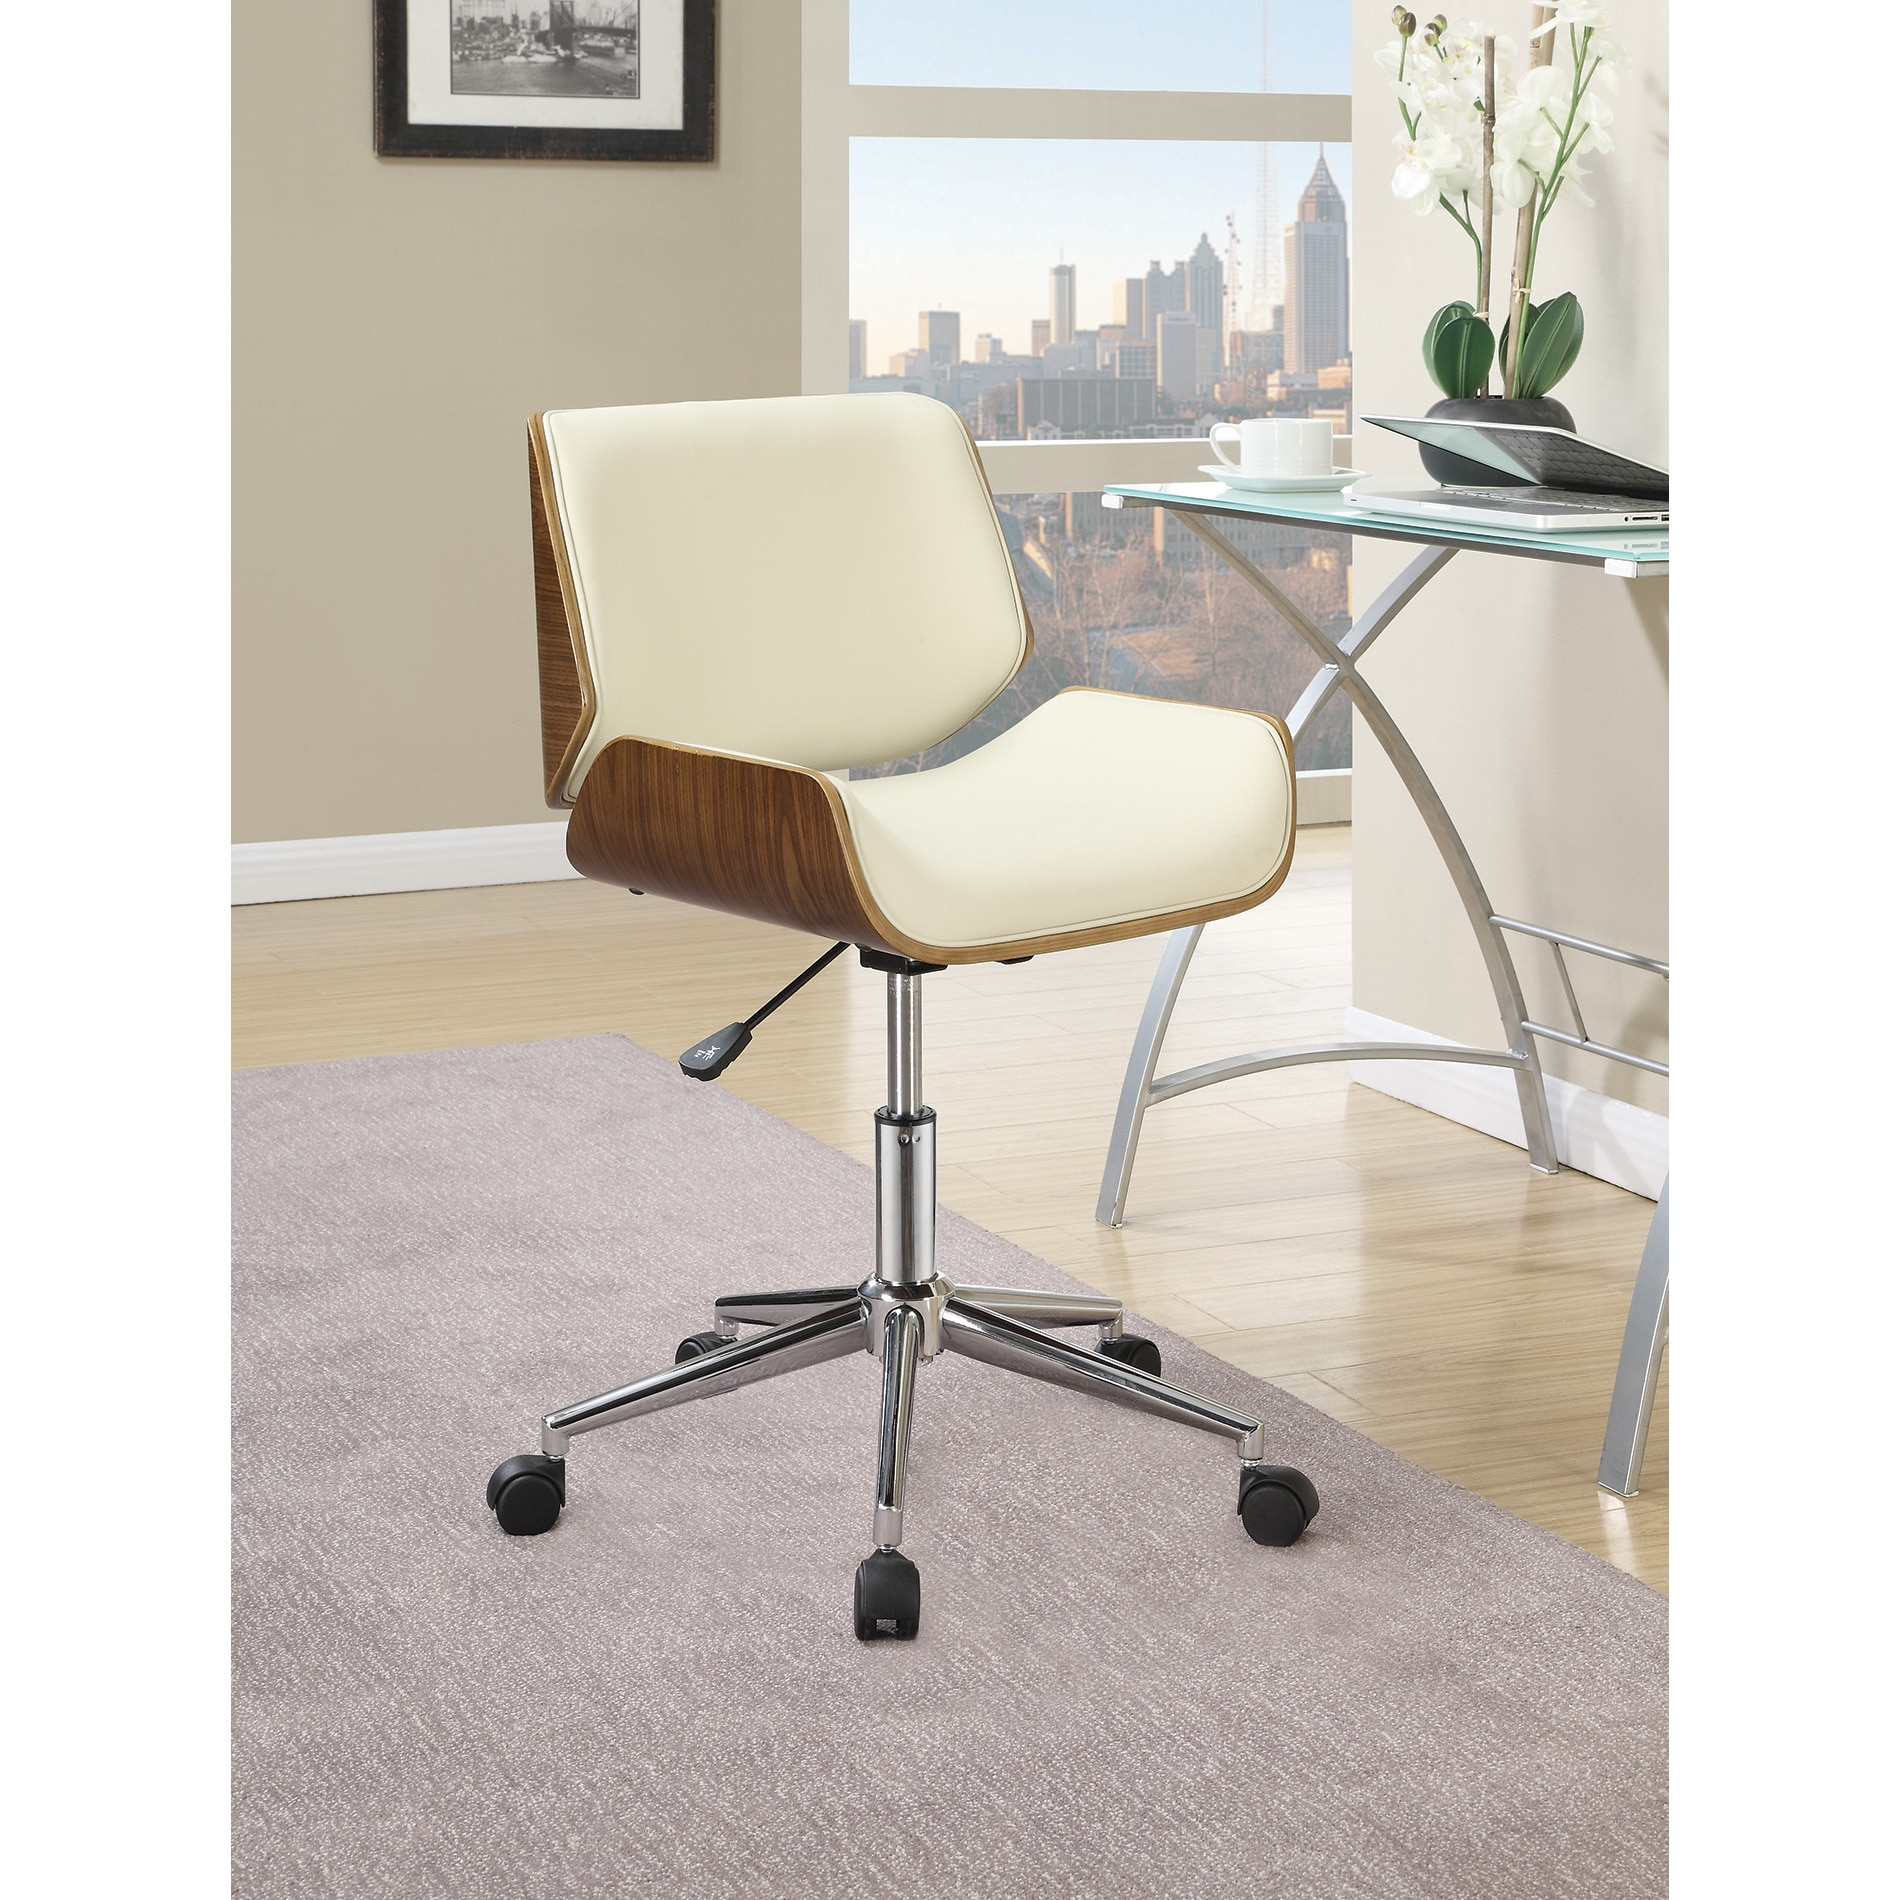 office chair overstock pet high shop palm canyon chico white free shipping on orders over 45 com 12369413